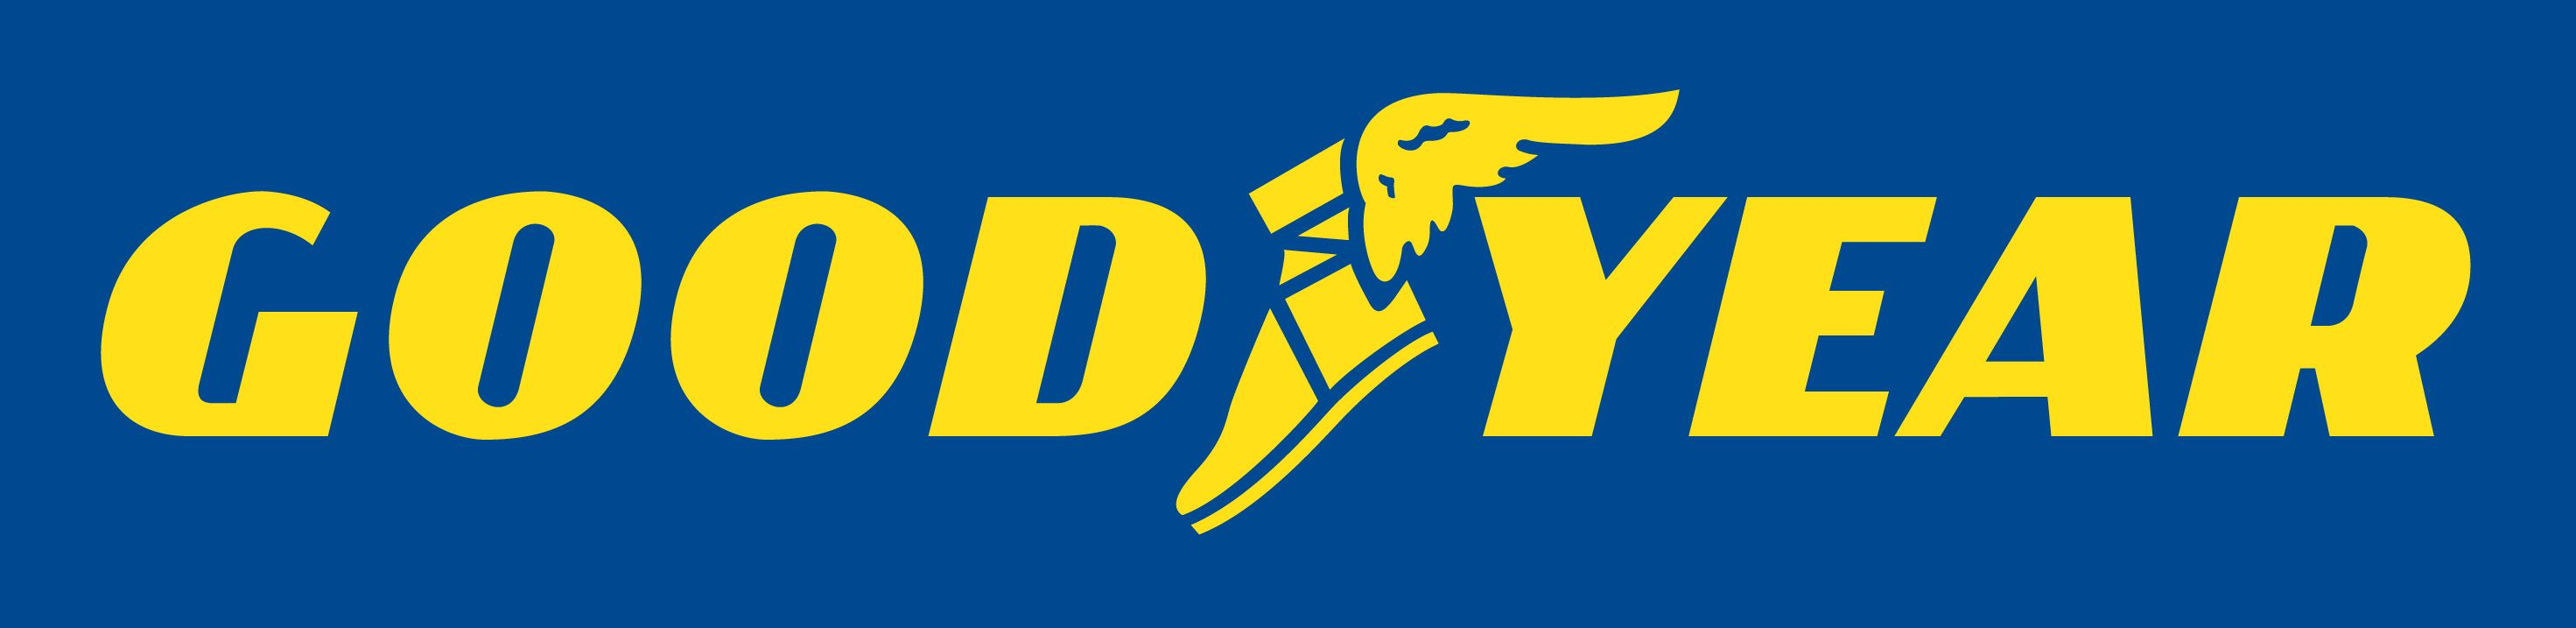 Pin By Student Brands On Student Lifestyle Goodyear Logo